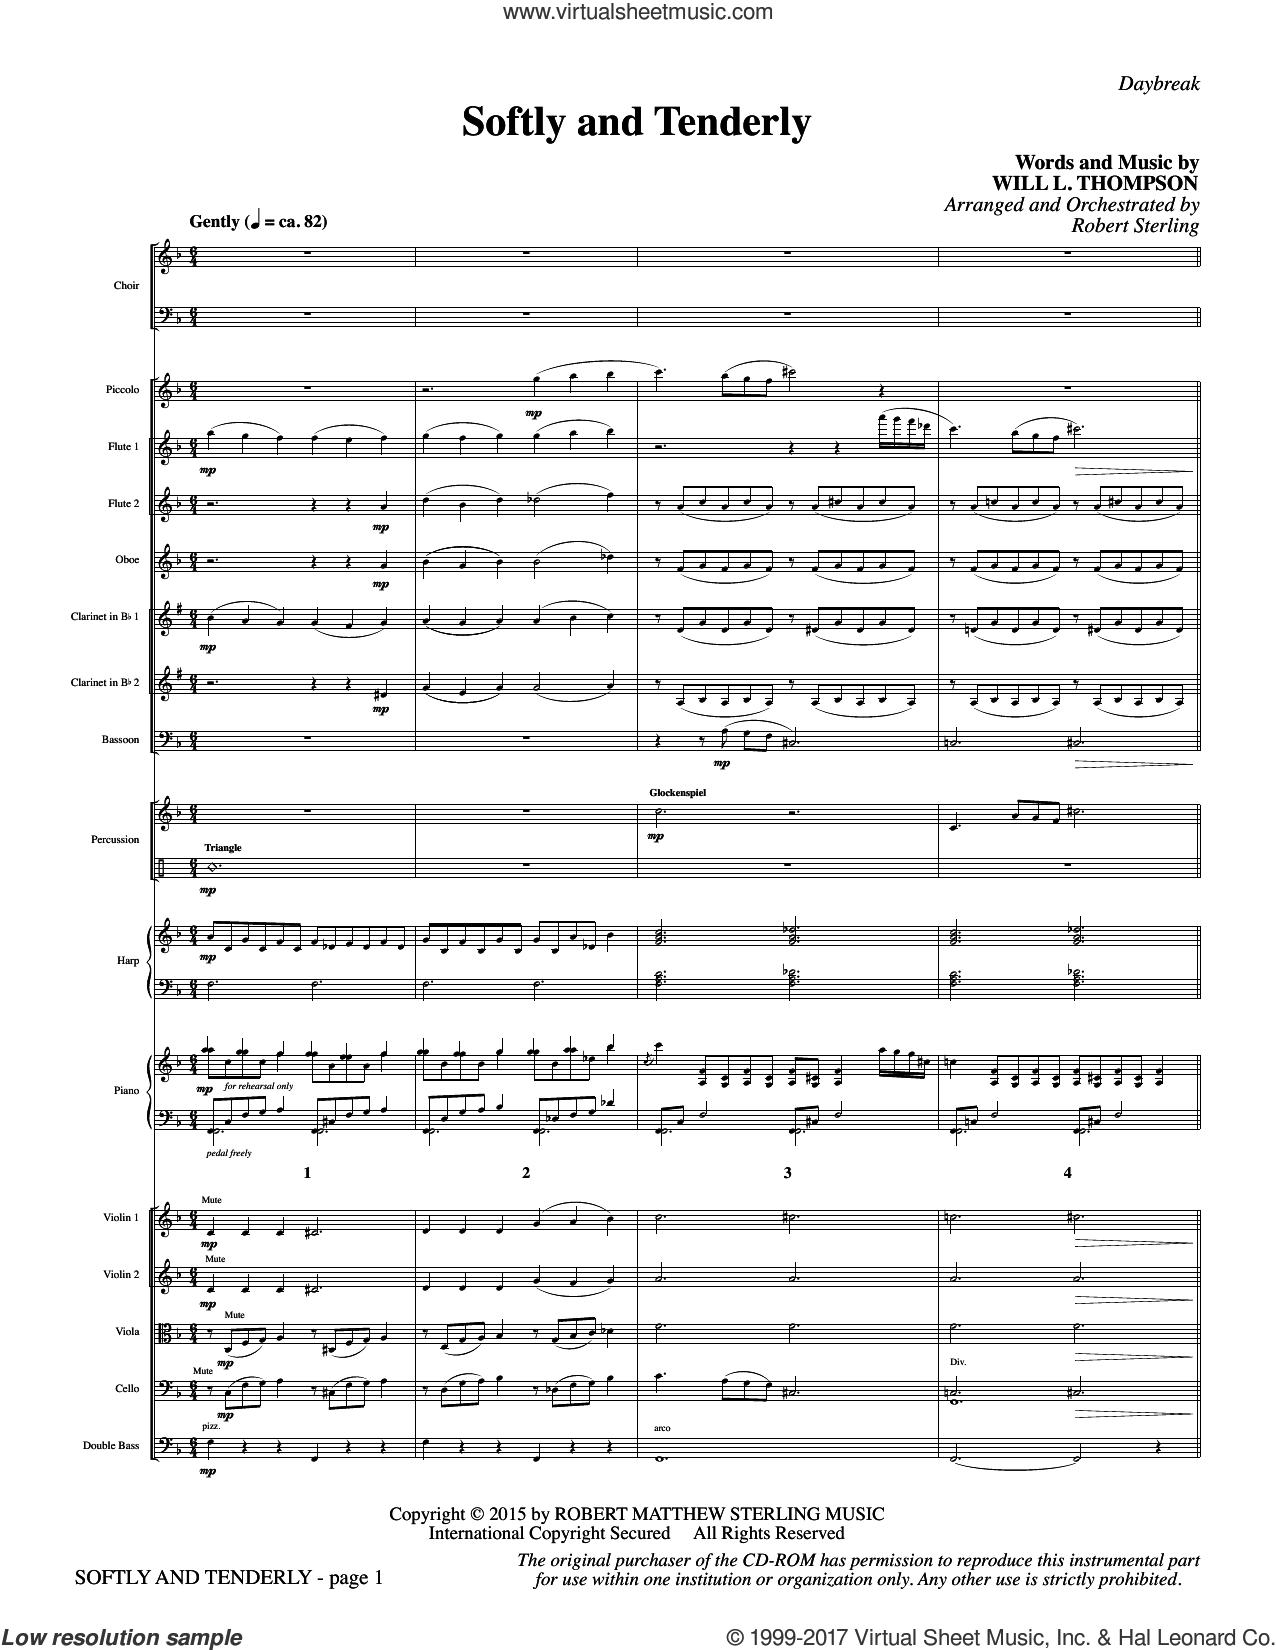 Softly and Tenderly (COMPLETE) sheet music for orchestra/band by Robert Sterling and Will L. Thompson, intermediate skill level